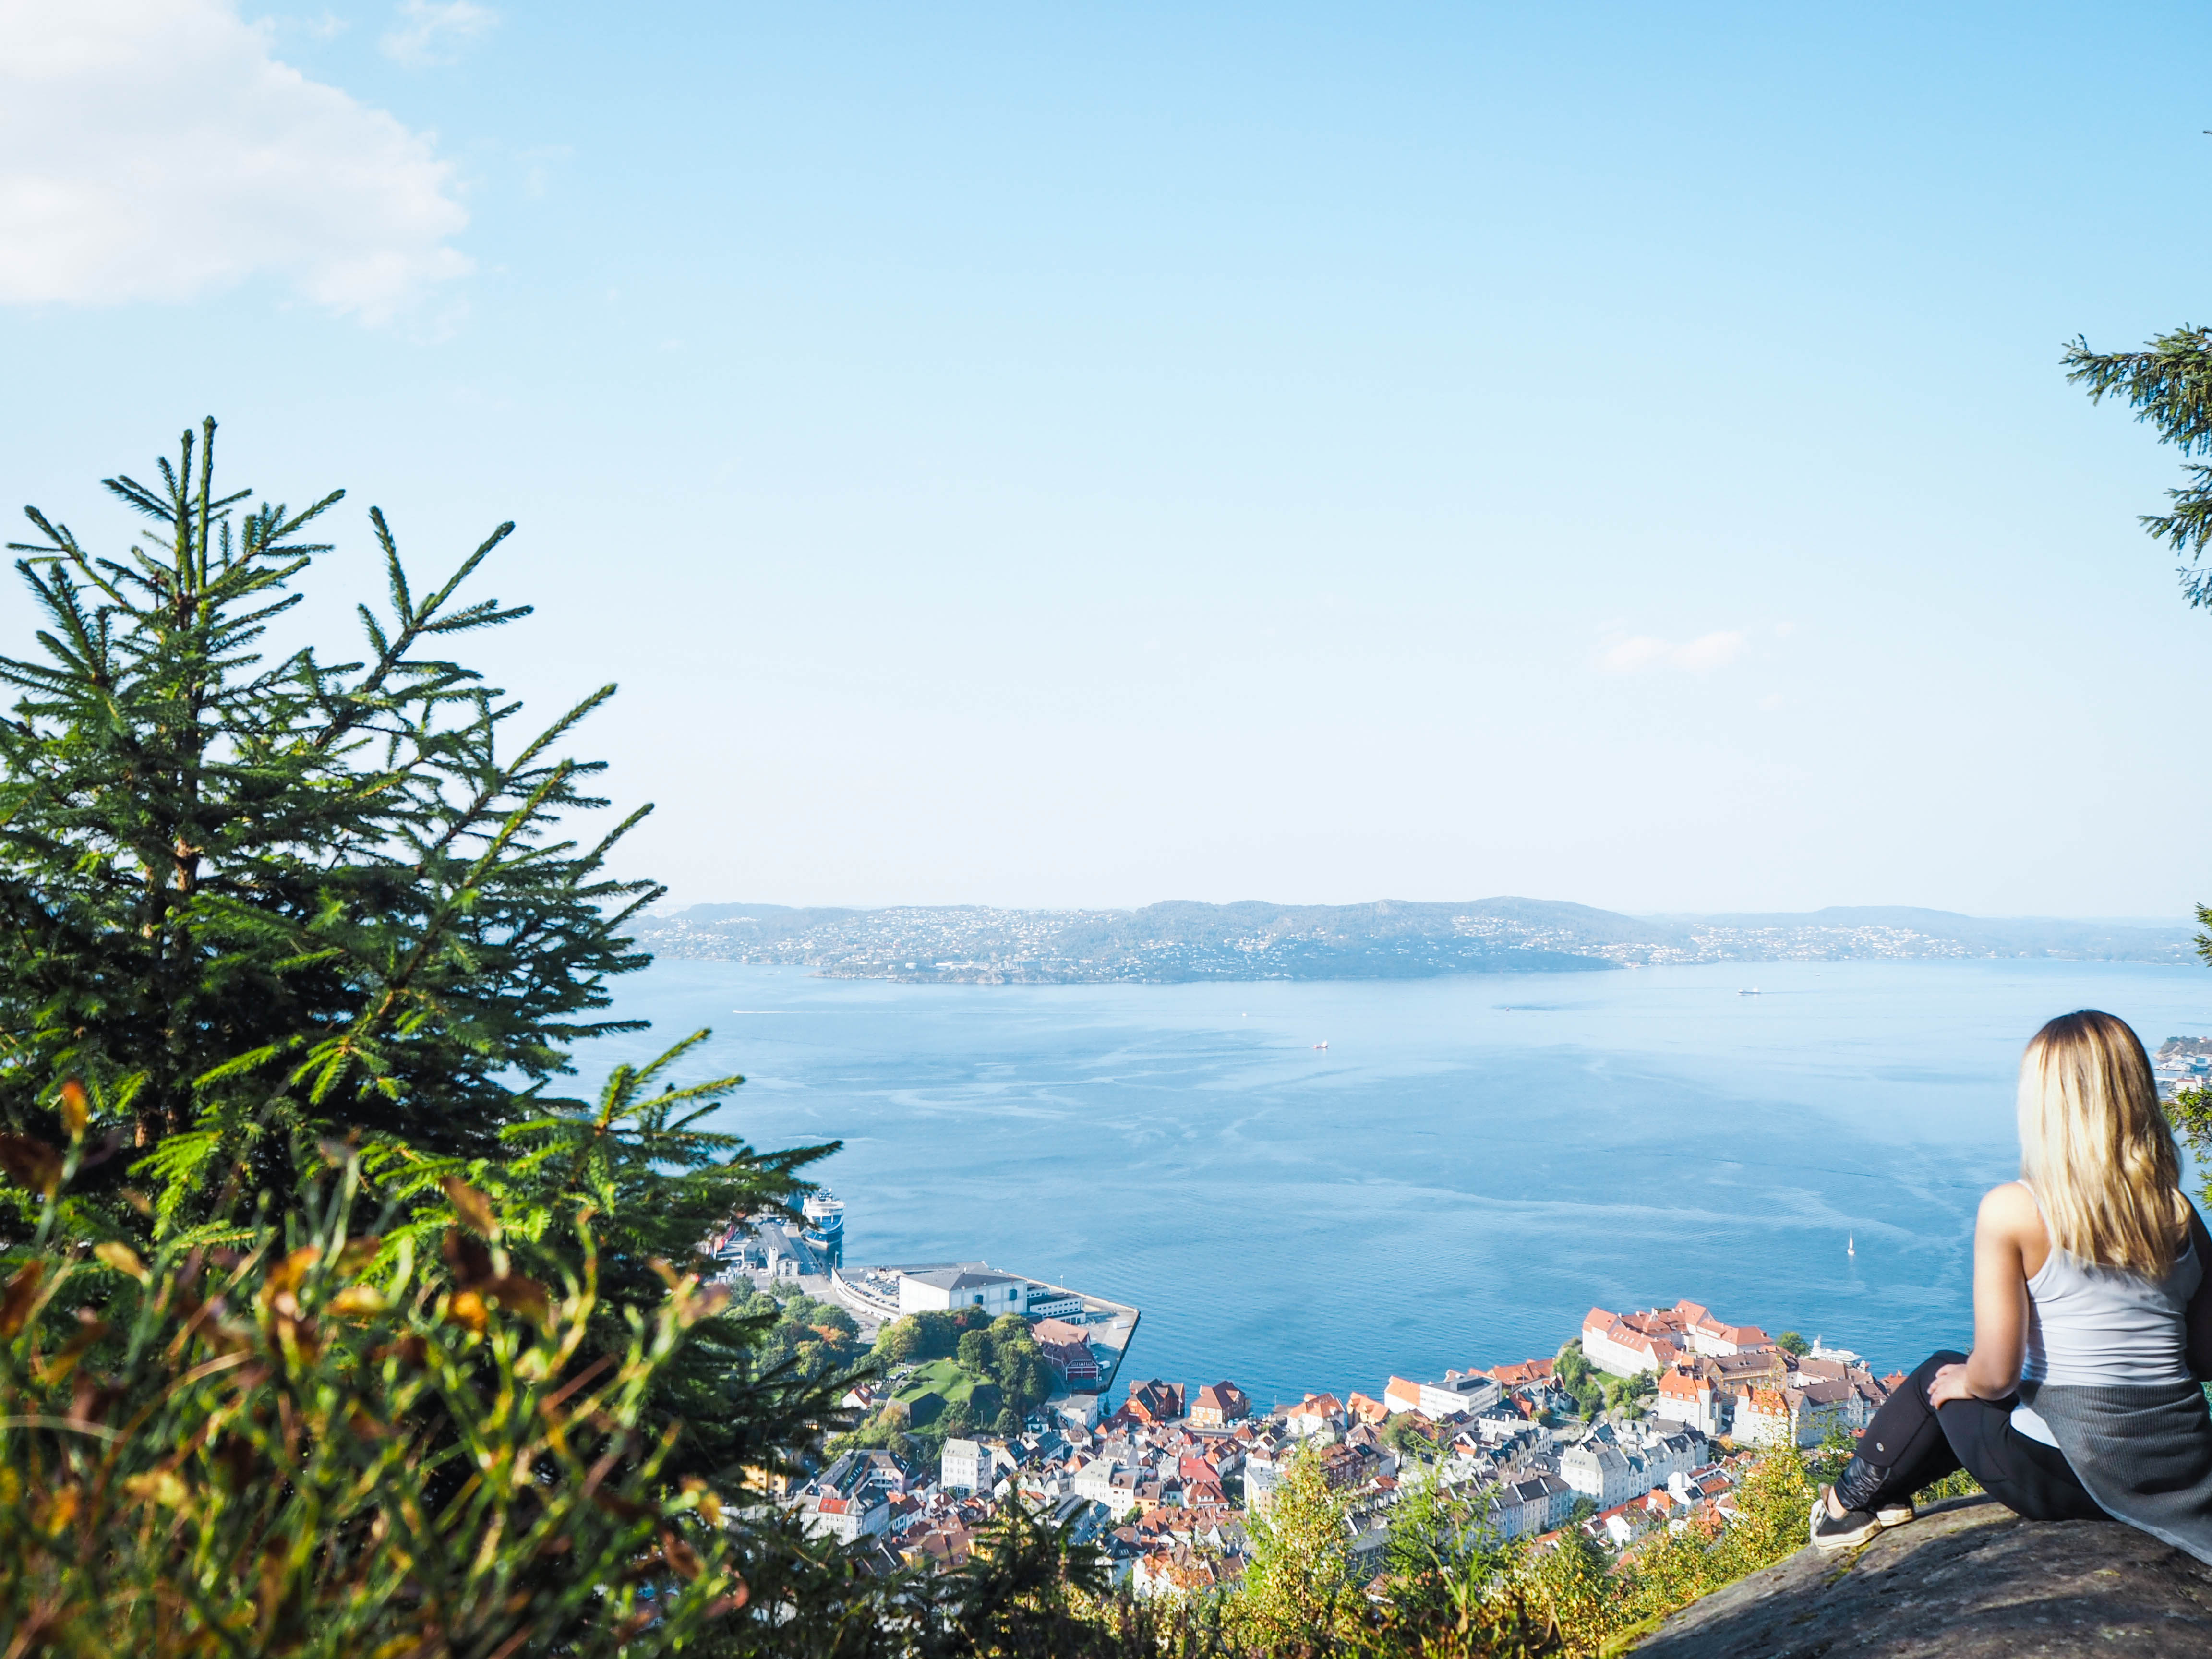 View of Bergen, Norway from Mt. Fløyen